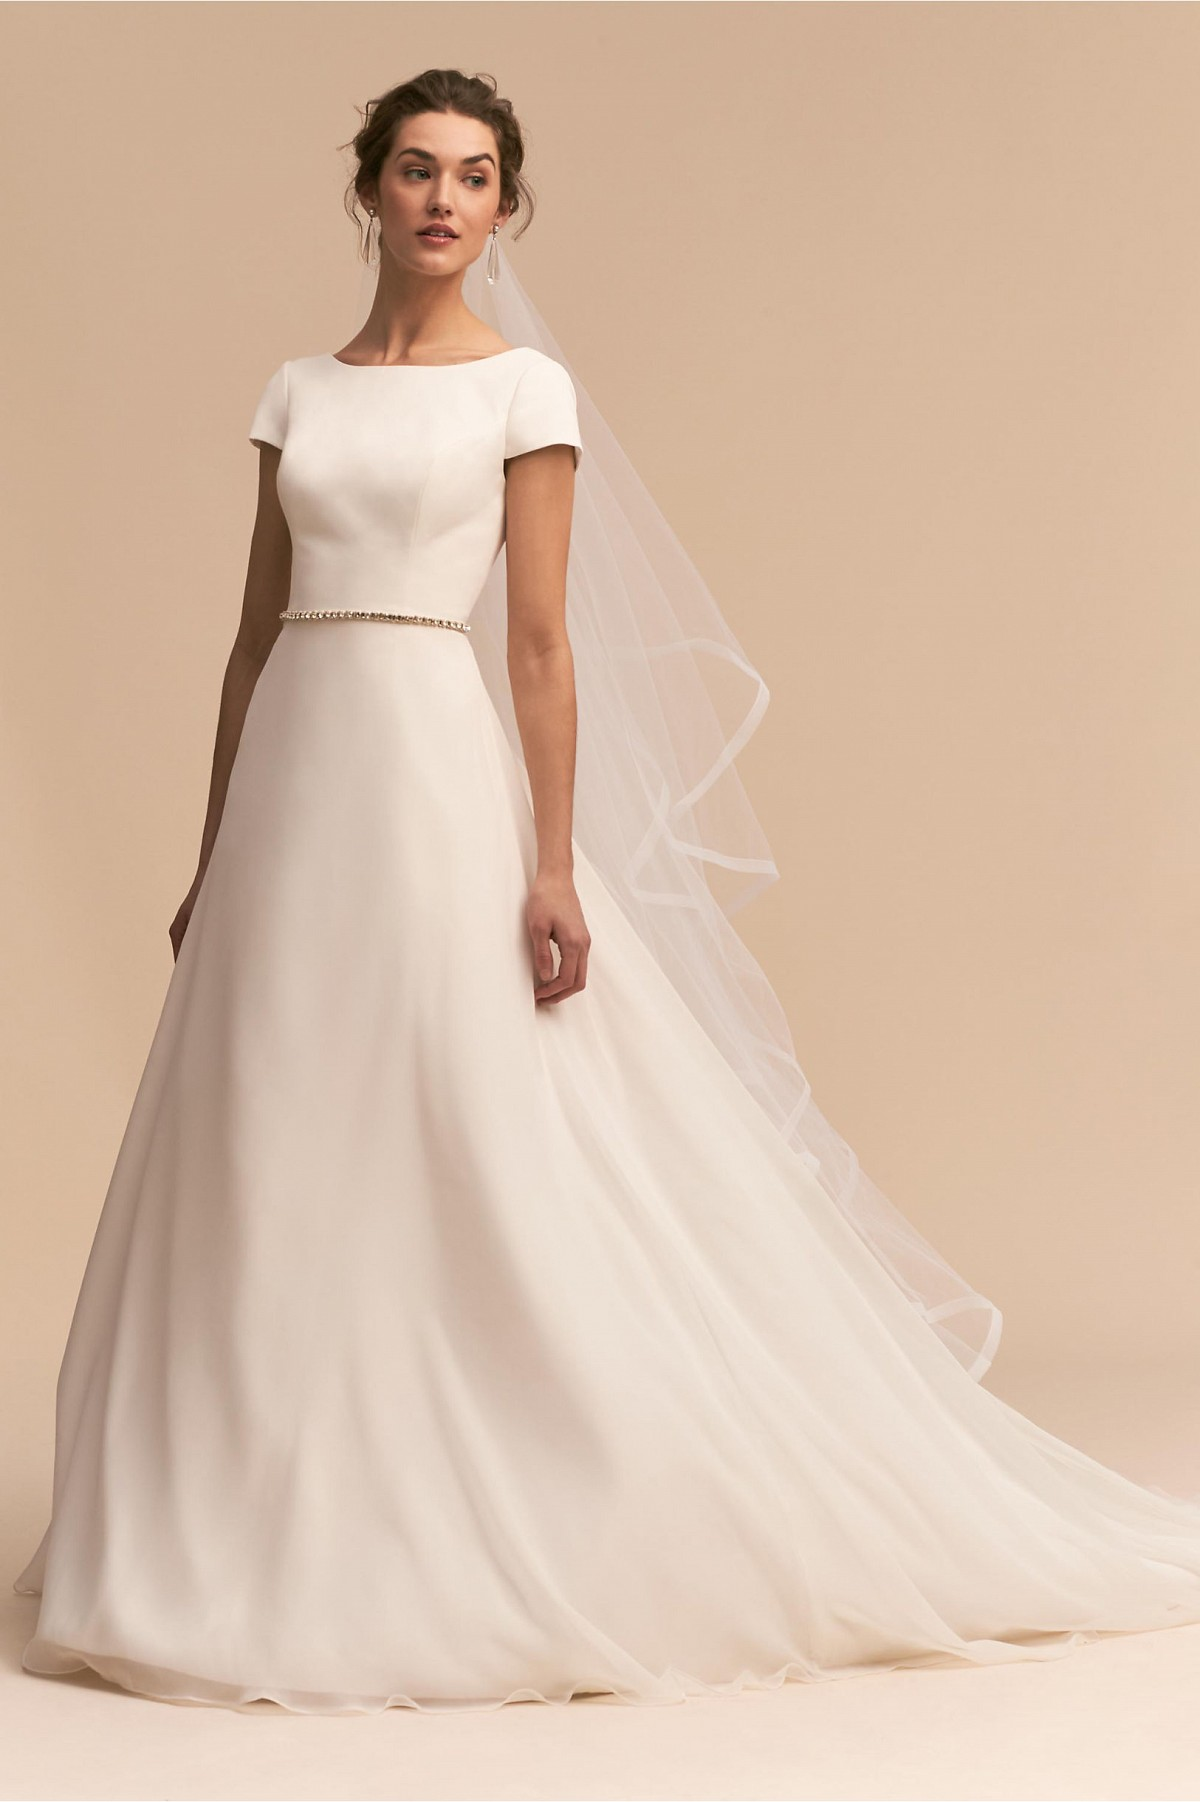 10 Clean Simple Bridal Gowns Inspired By Meghan Markle